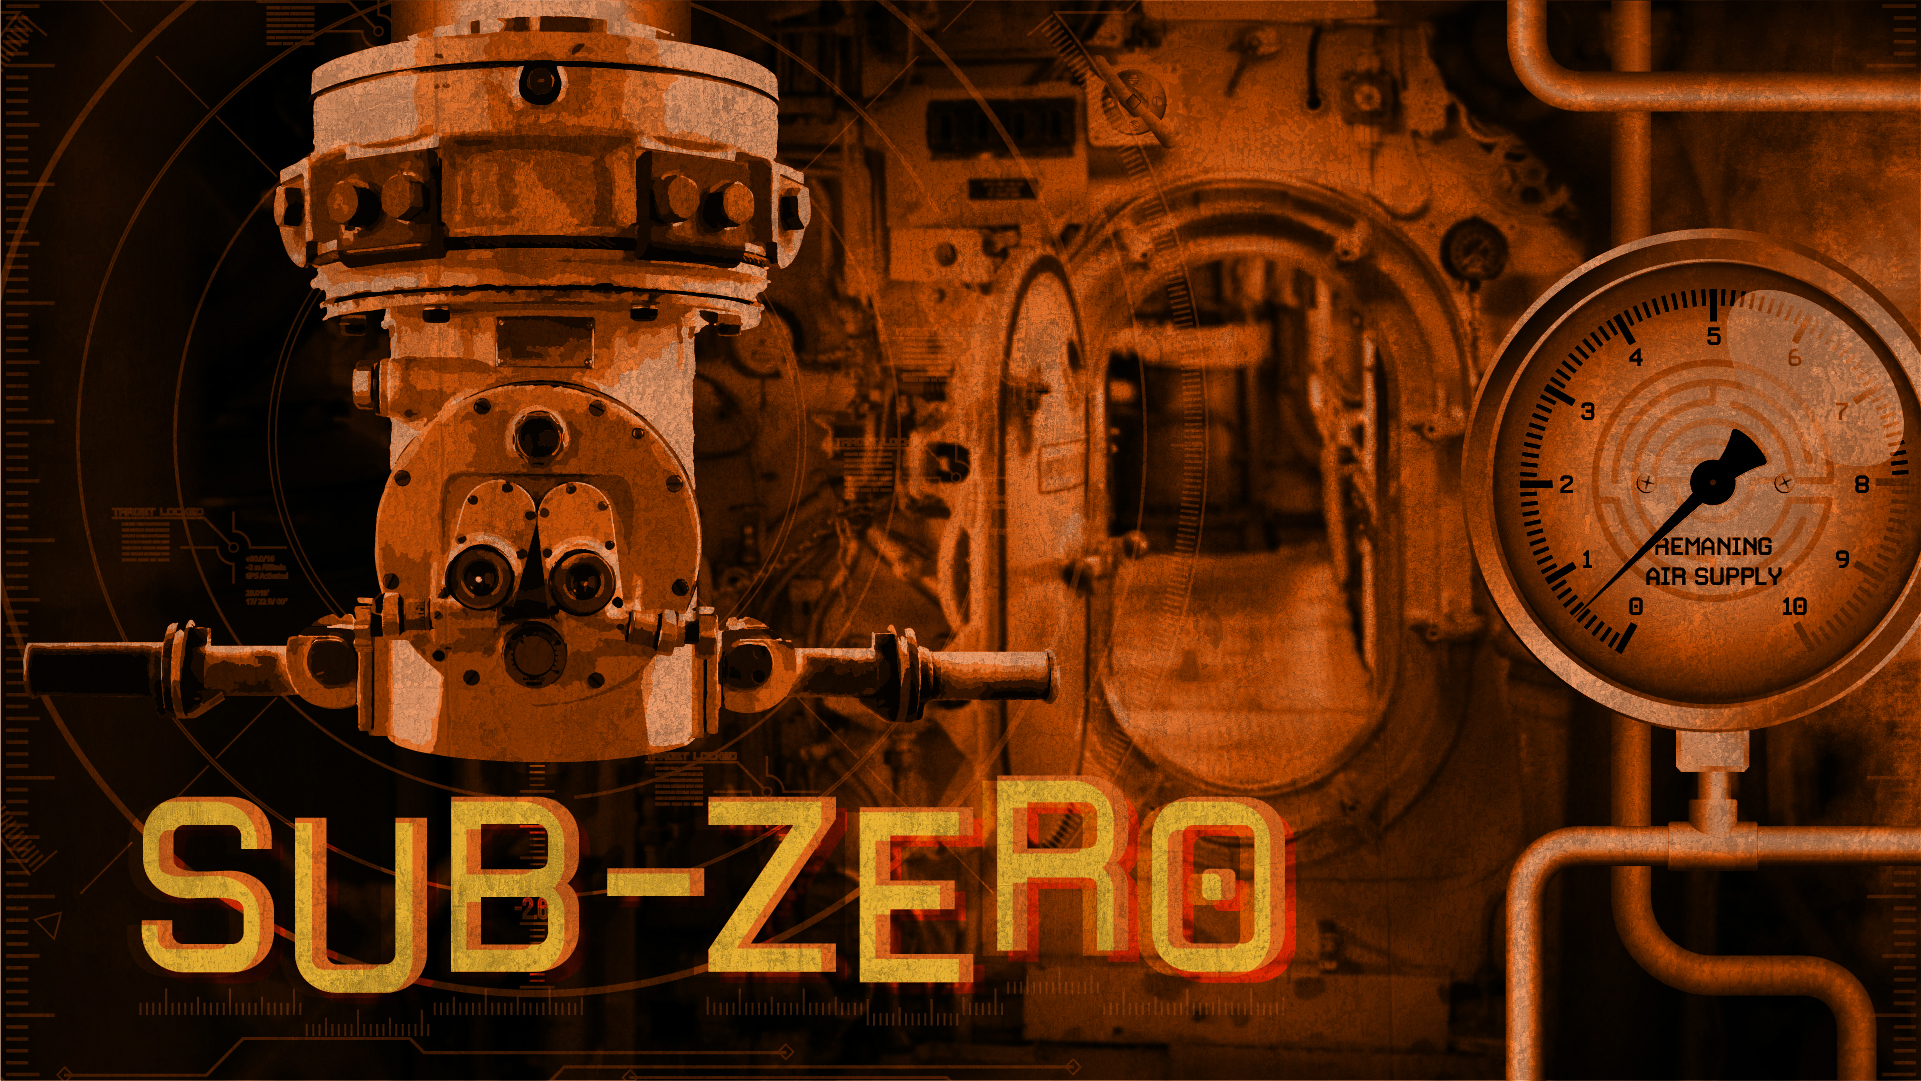 SUB ZERO - AVAILABLE AT MORRISON STREETThe spy-sub HMS Pandora has been decommissioned after its entire crew was lost during a secret mission. Evidence of its previous operations can never fall into enemy hands! Your team needs to use the 60 remaining minutes of life support to dive in, reconfigure the submarine's controls, access the self destruct function, and escape before it's too late. Good luck!